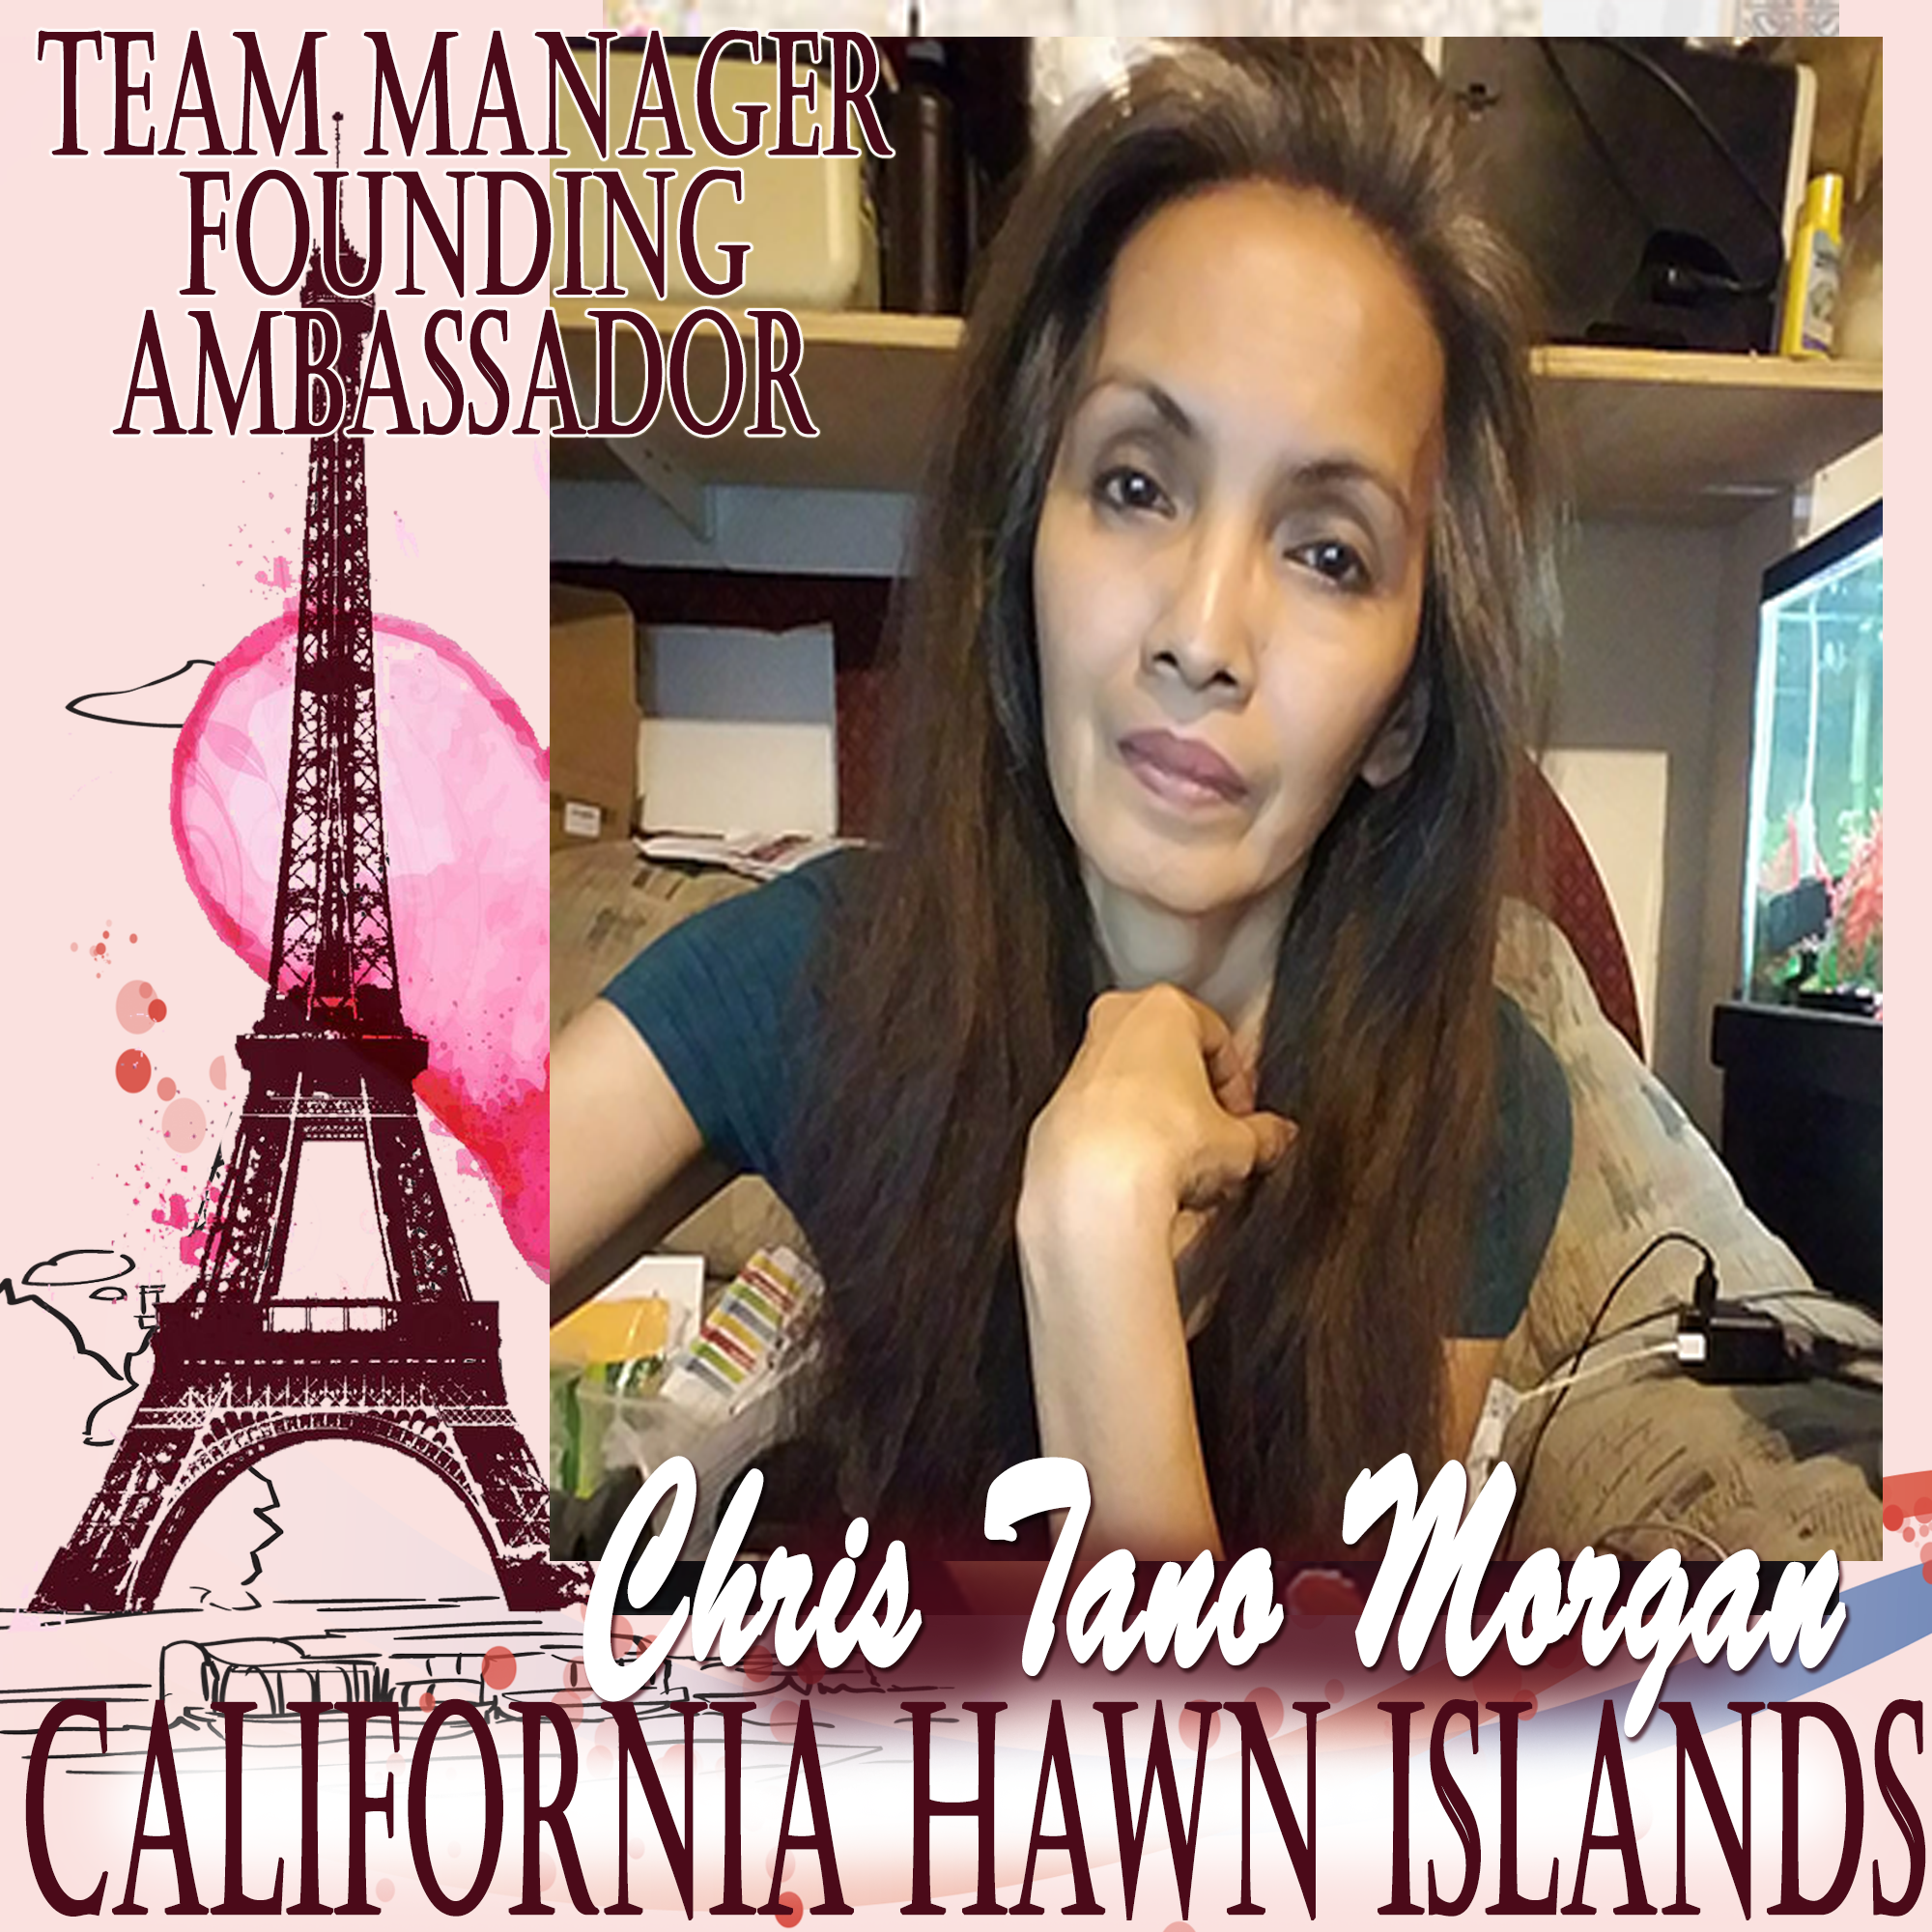 Acti-Labs Founding Ambassador Chris Tano Morgan Ageless Beauty Essentials